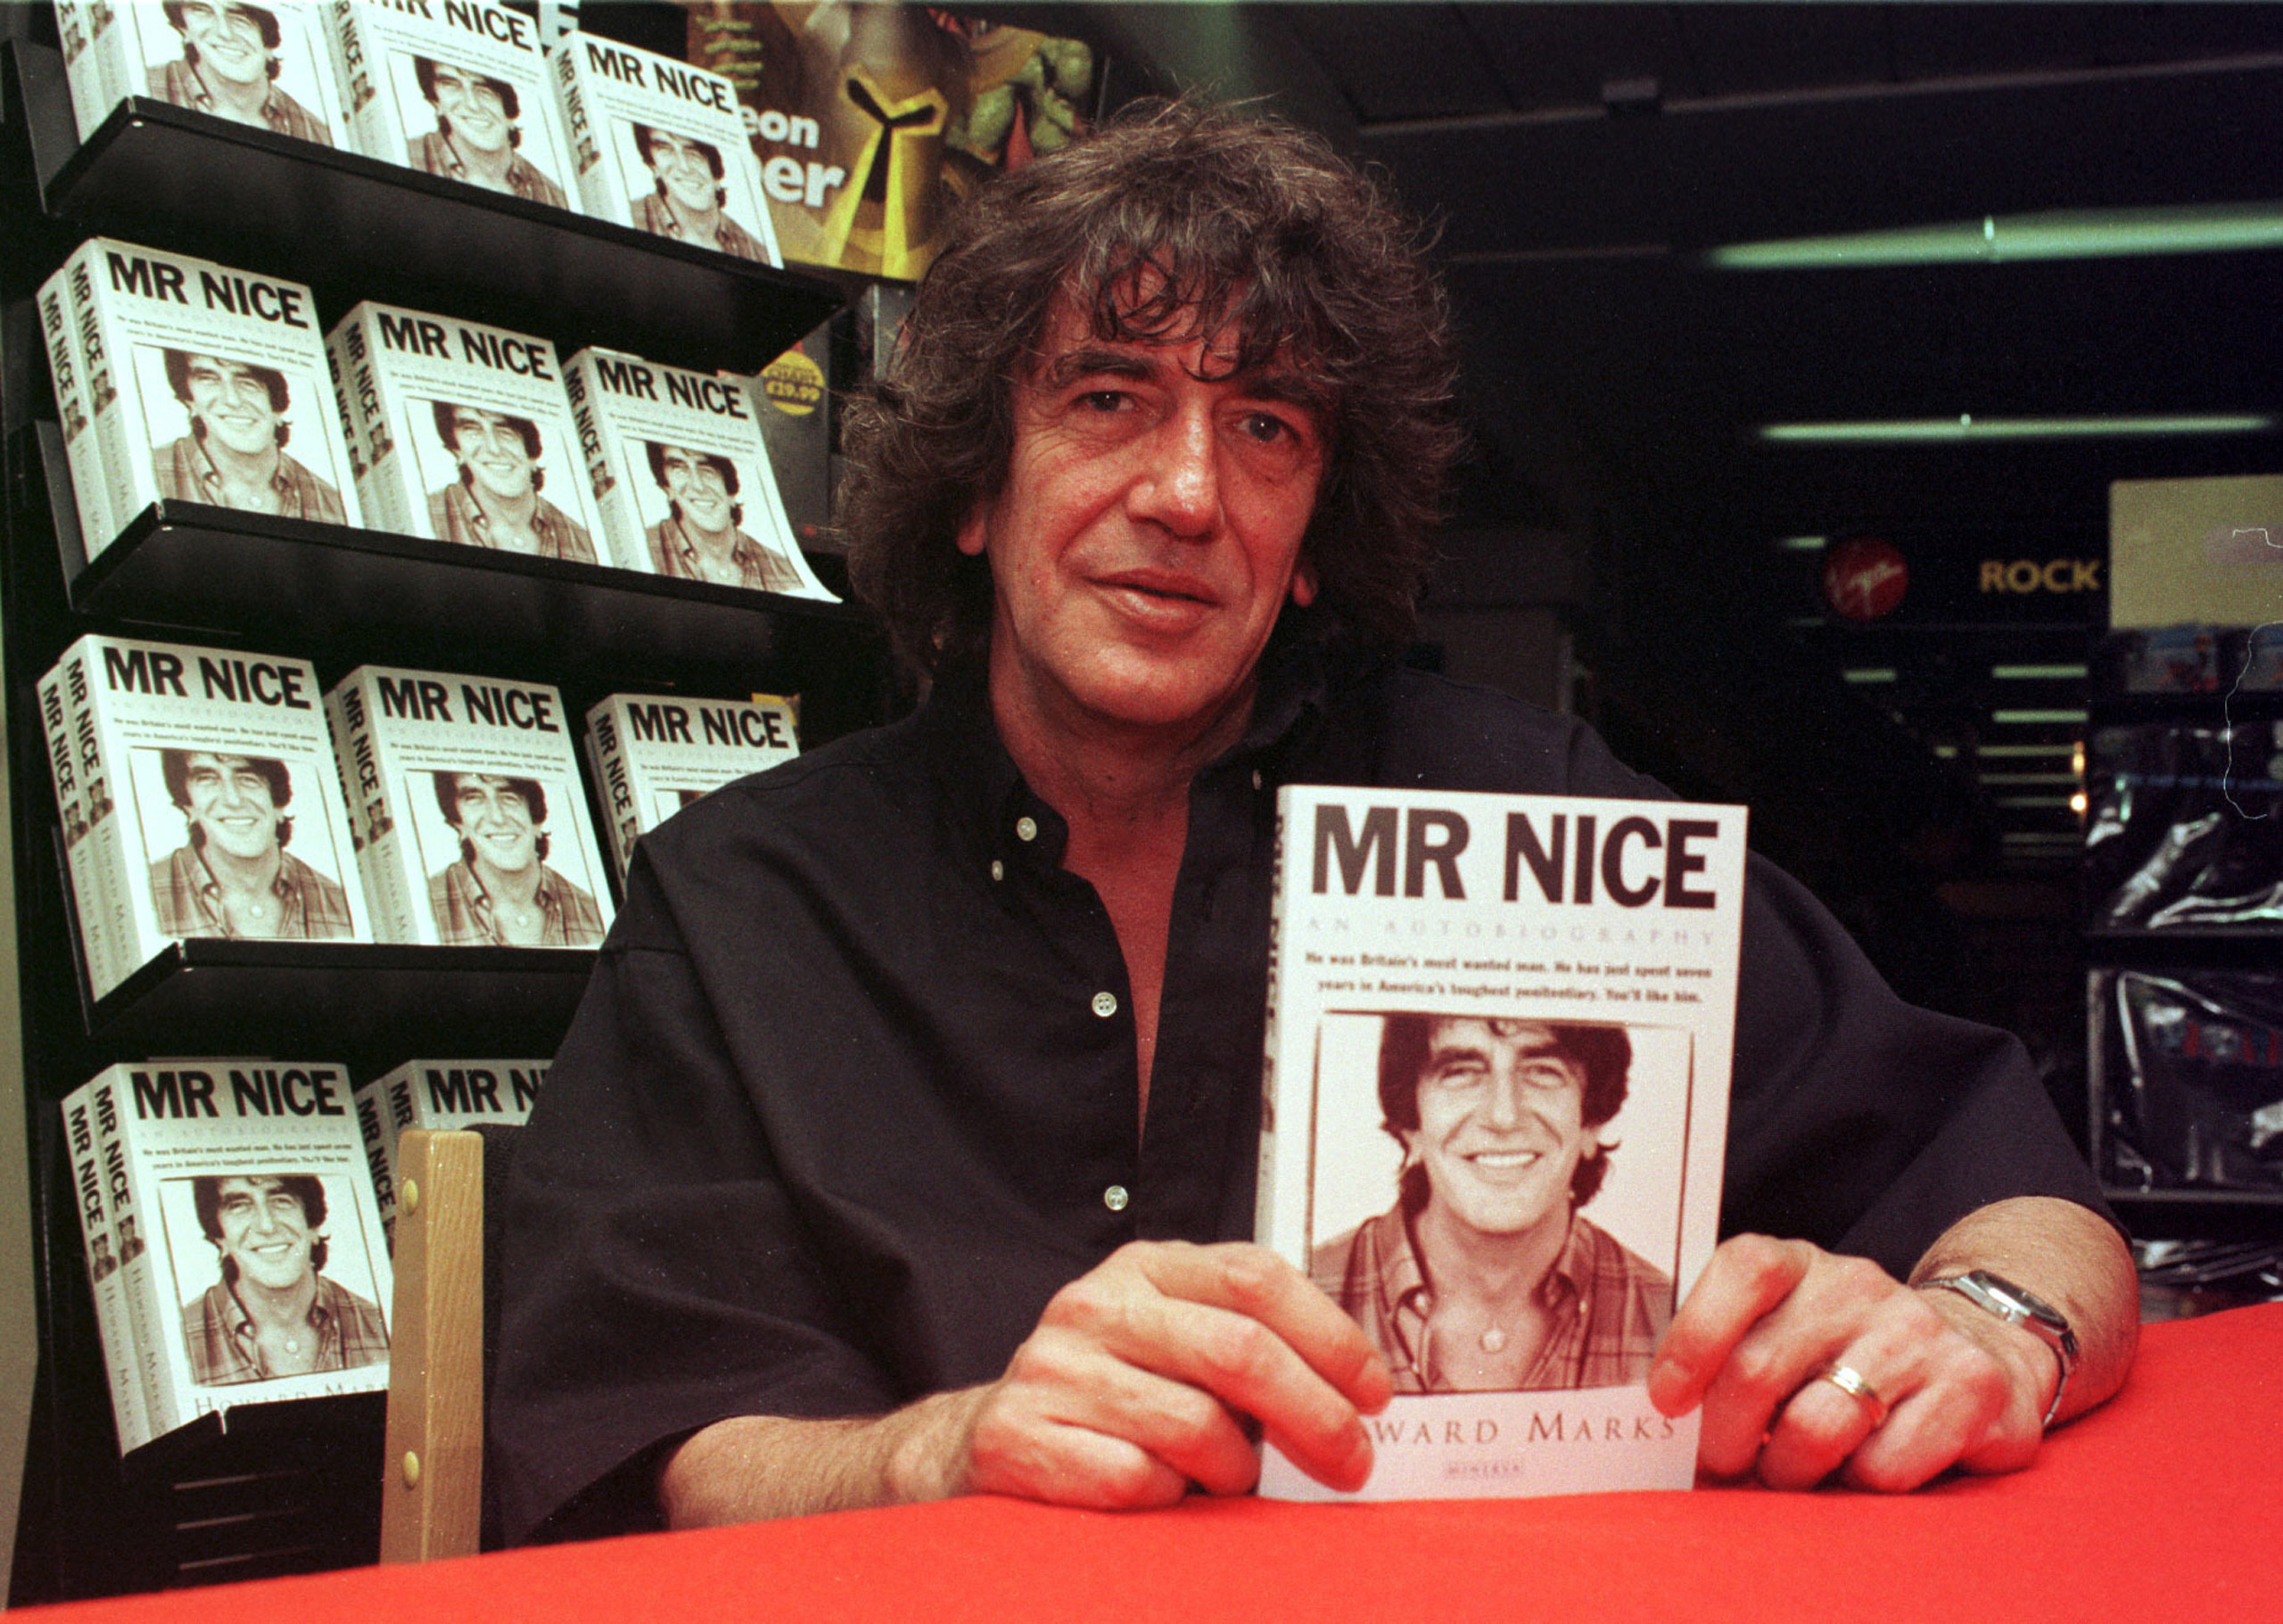 Former drug smuggler and author Howard Marks, who has died aged 70, at a Virgin Megastore where he was signing copies of his autobiography 'Mr Nice' in London on July 4, 1997.